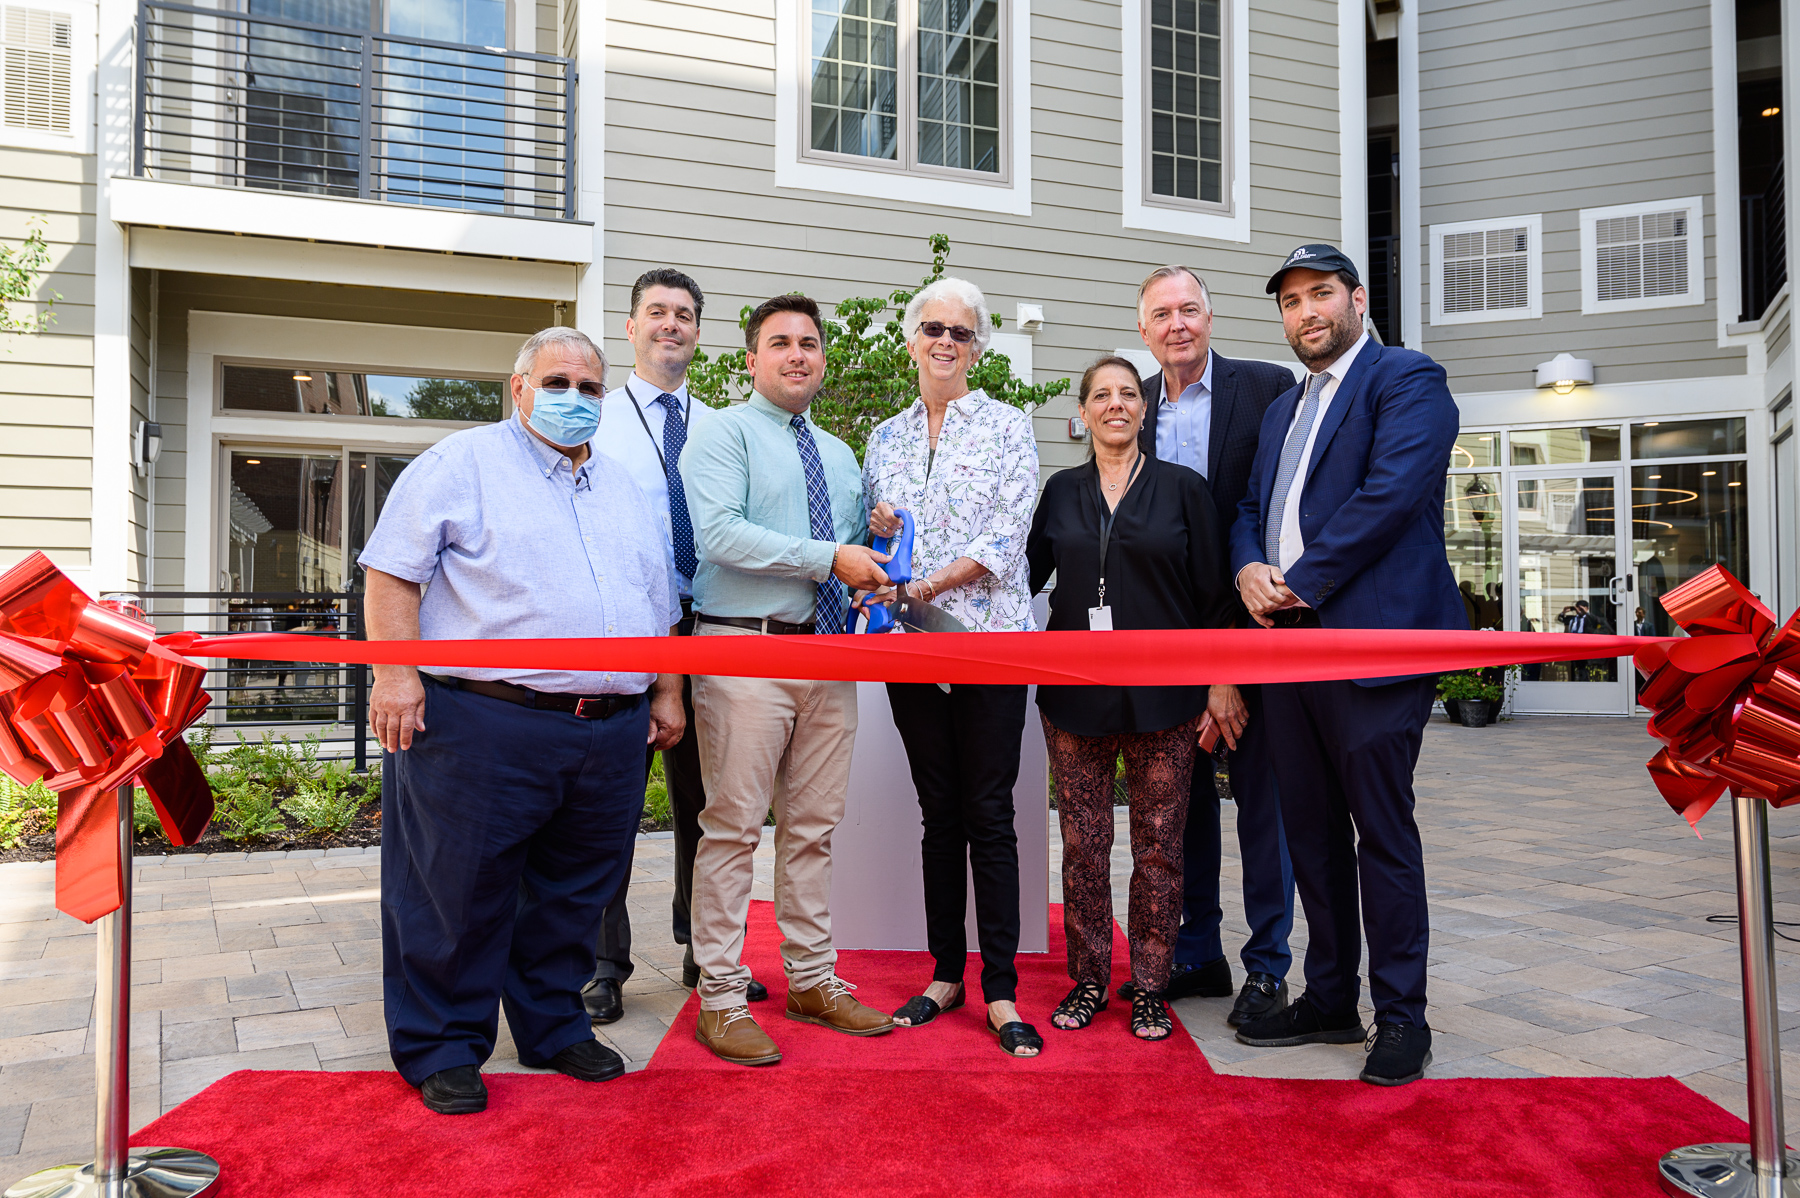 Raritan Mayor Zachary Bray joins Accurate Builders and Developers to celebrate successful debut of Crossings at Raritan Station